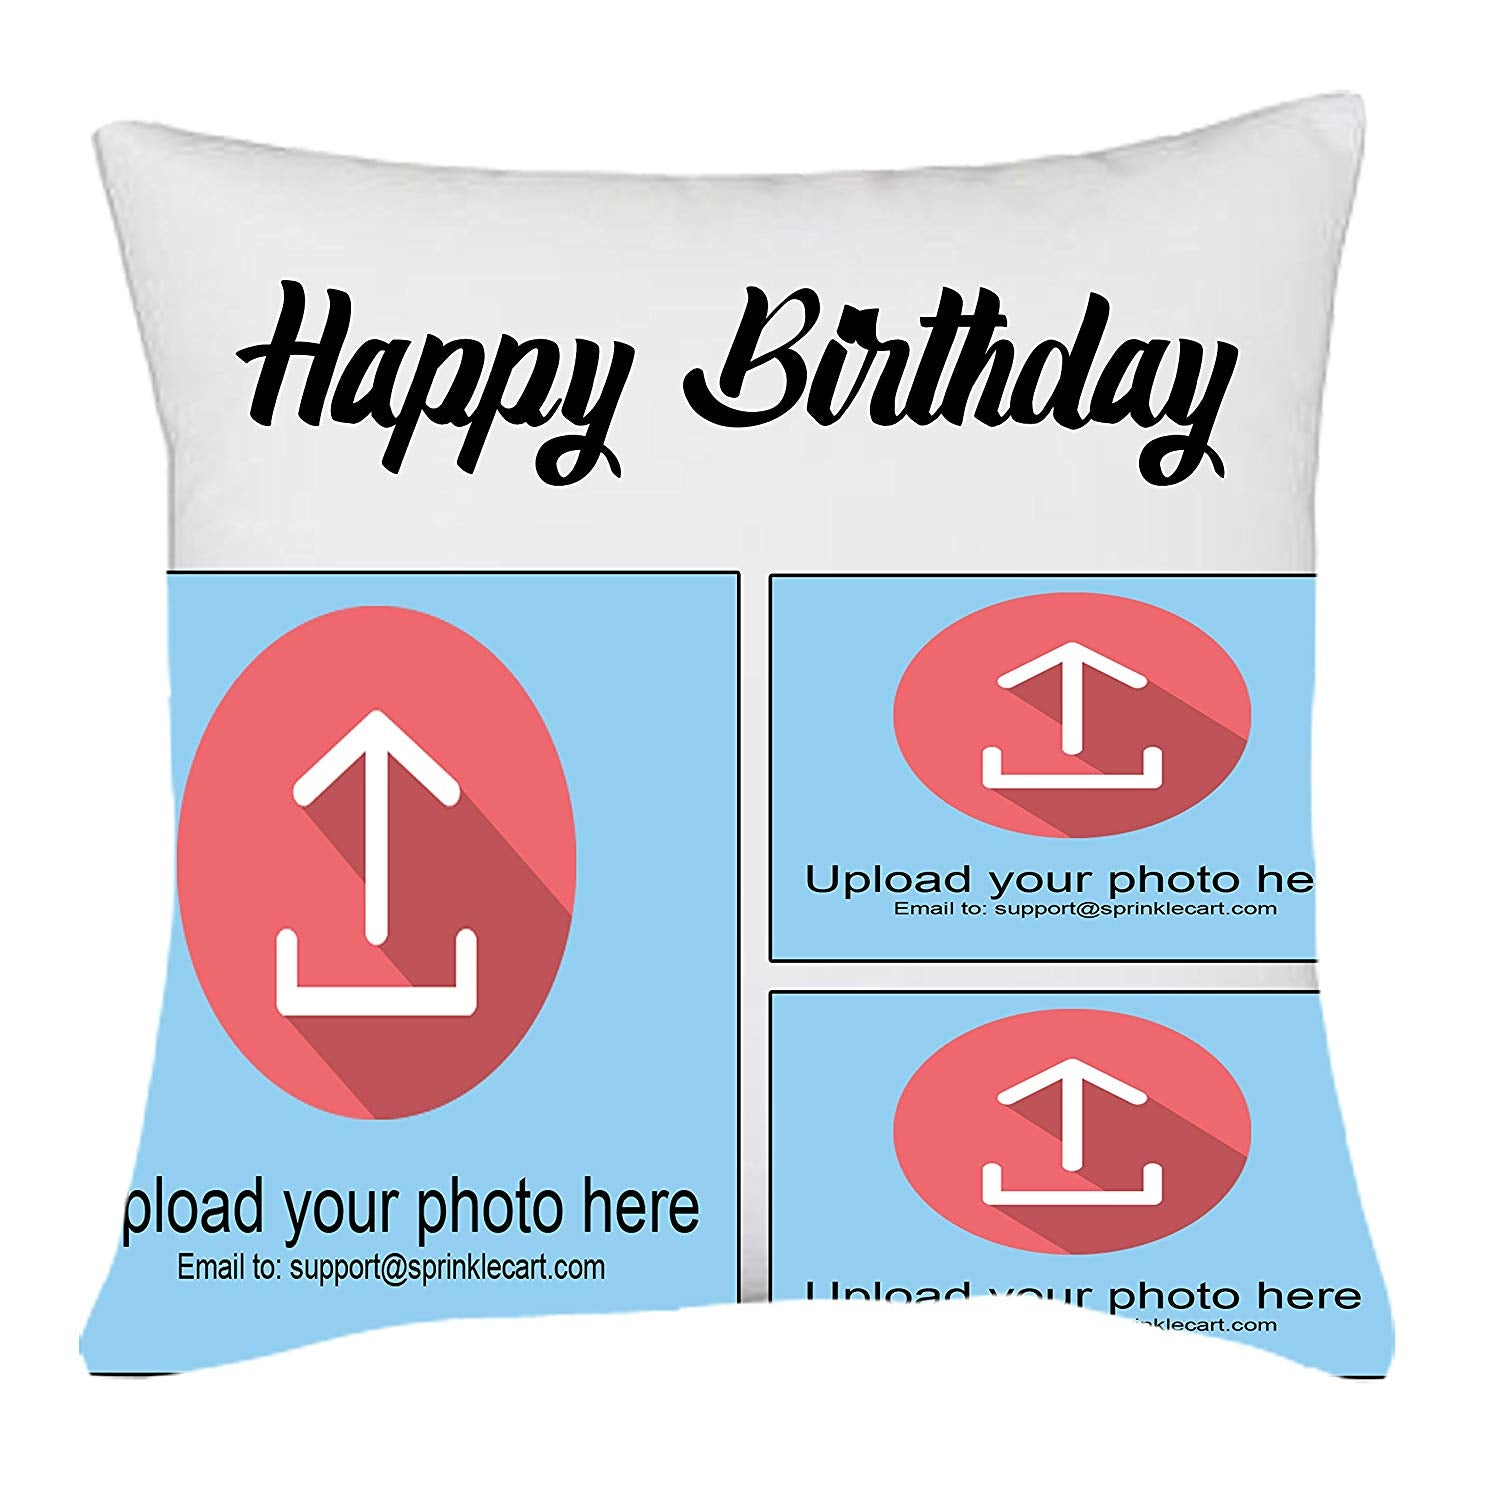 Personalized Photo Printed Unique Happy Birthday Gift Cushion by Sprinklecart | 15″ x 15″ with Filler Insert